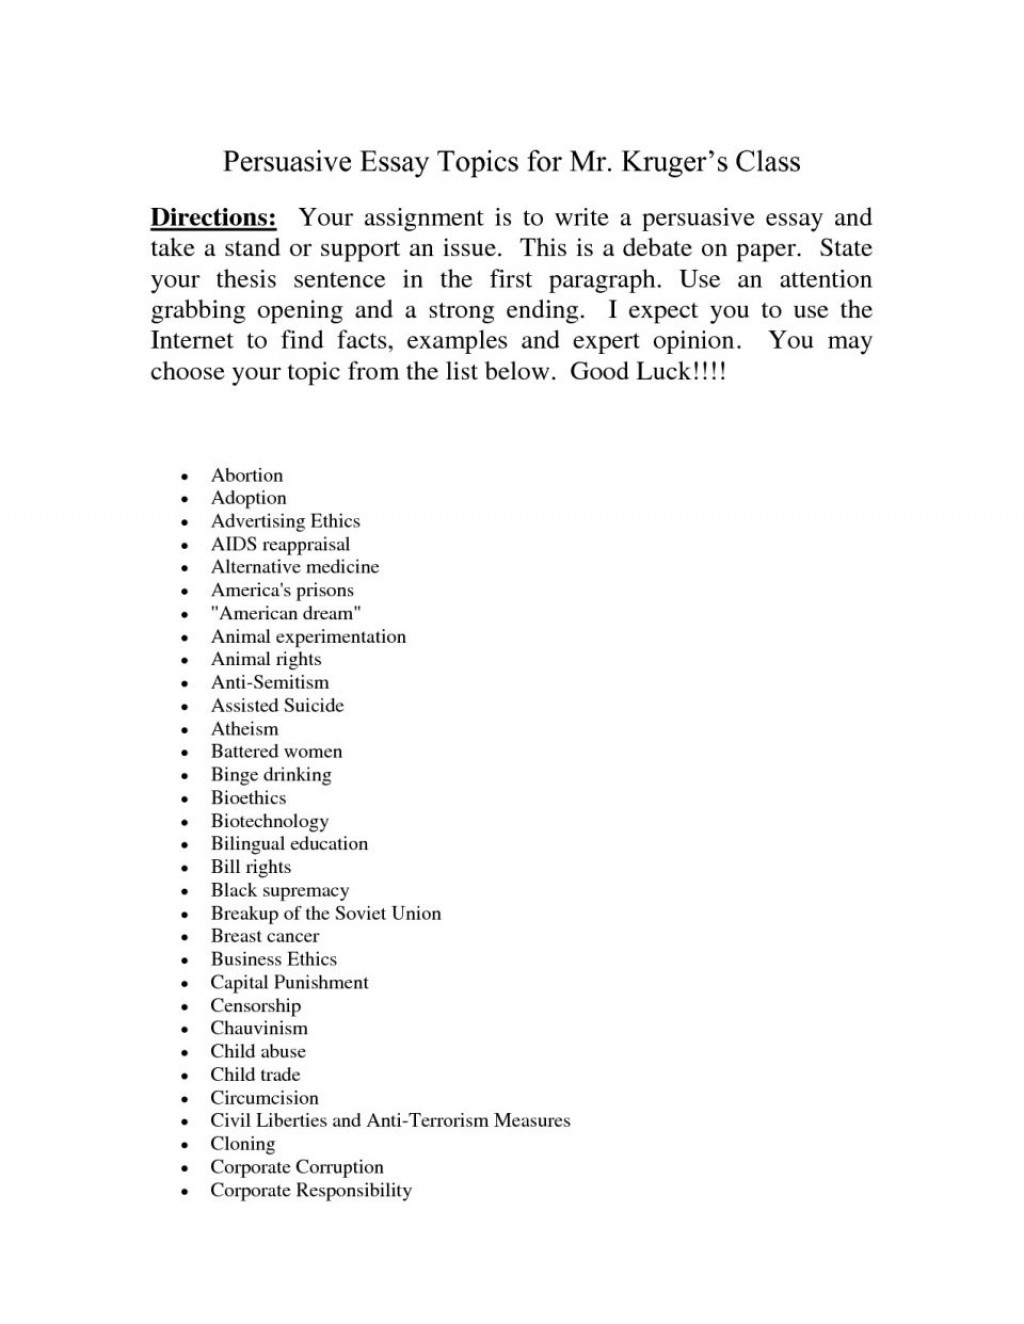 022 Interesting Topic For Research Paper Essay Barca Fontanacountryinn Within Good Persuasive Narrative Topics To Write Abo Easy About Personal Descriptive Informative Synthesis Breathtaking In Physical Education Finance Nutrition Large